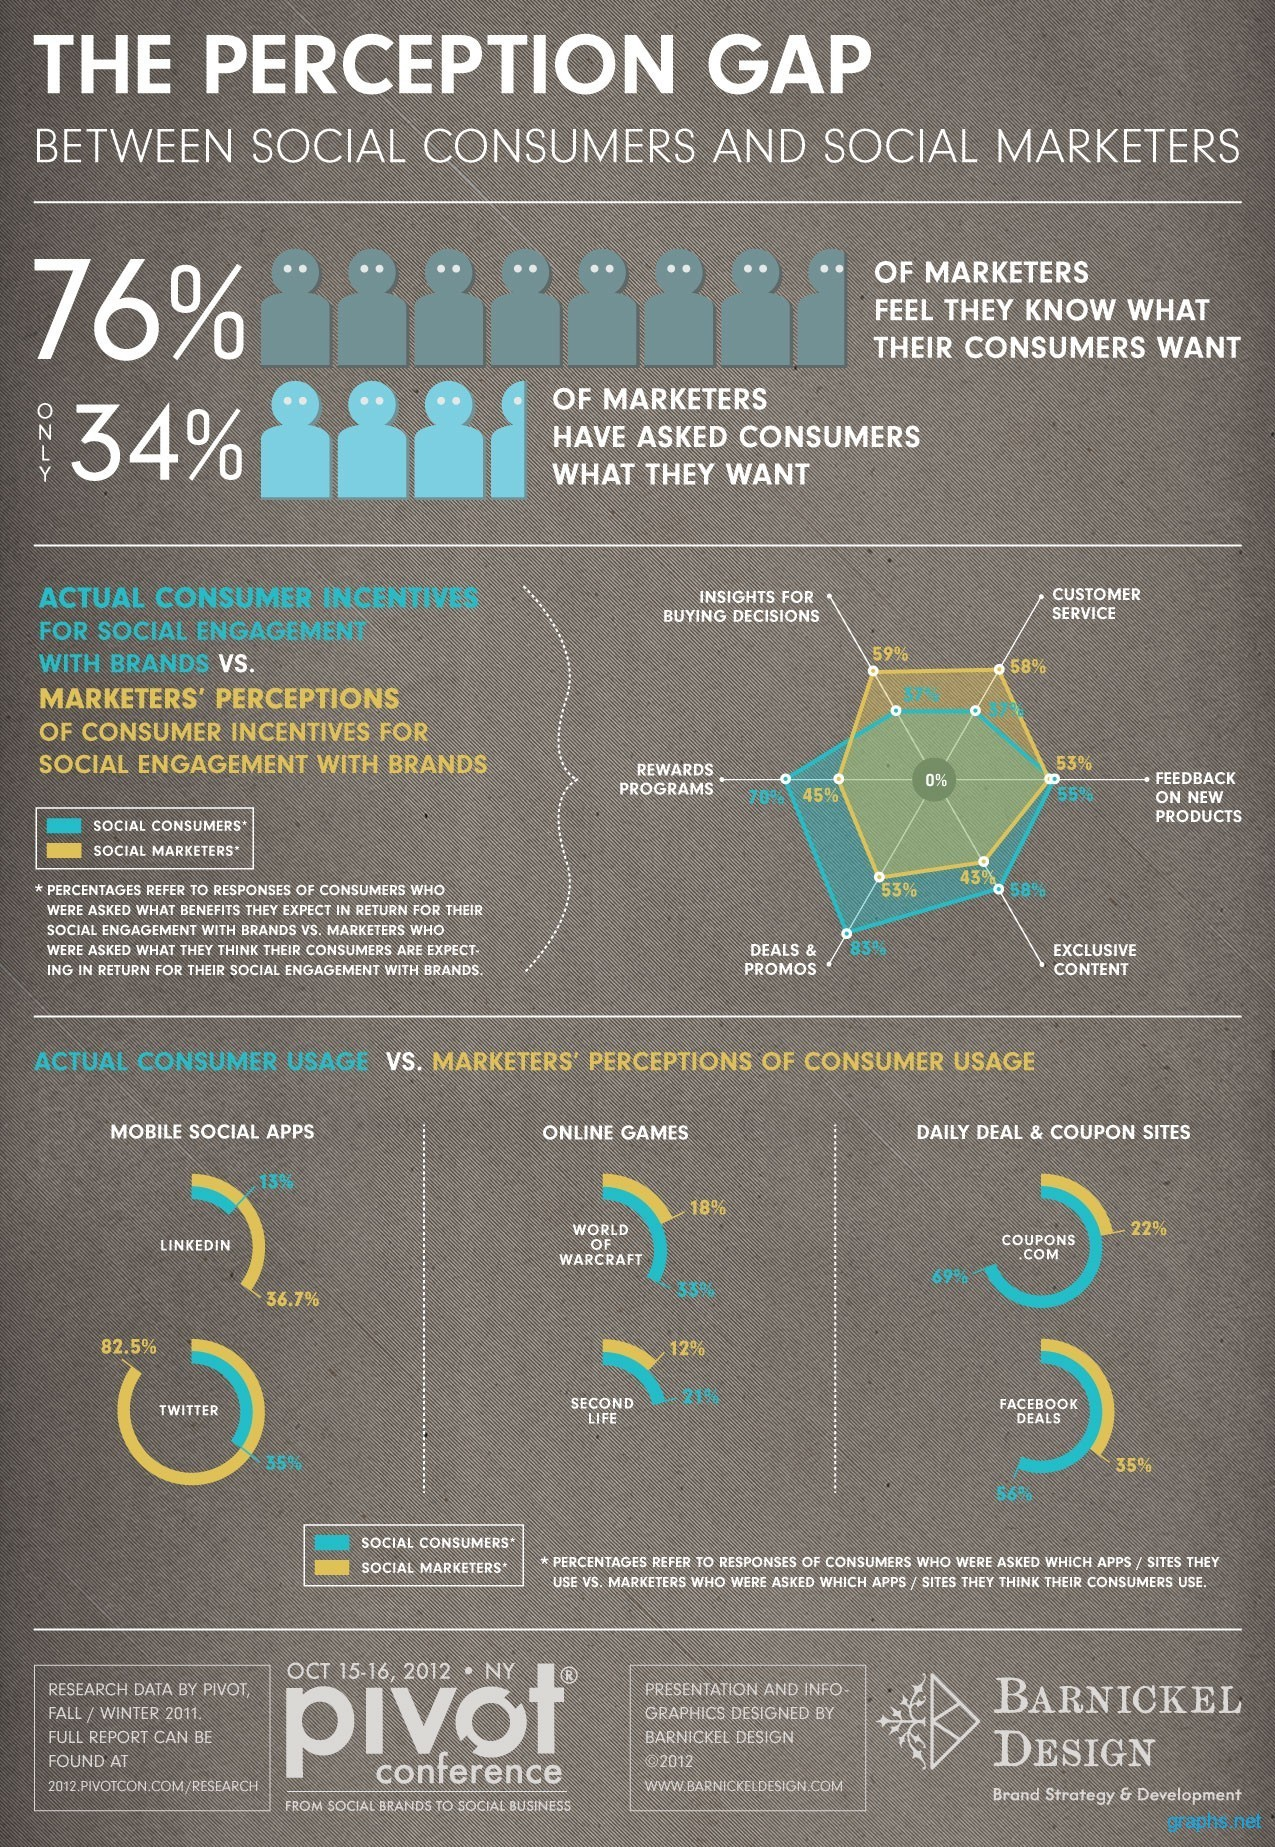 Social Marketers and Consumers Perception Gap